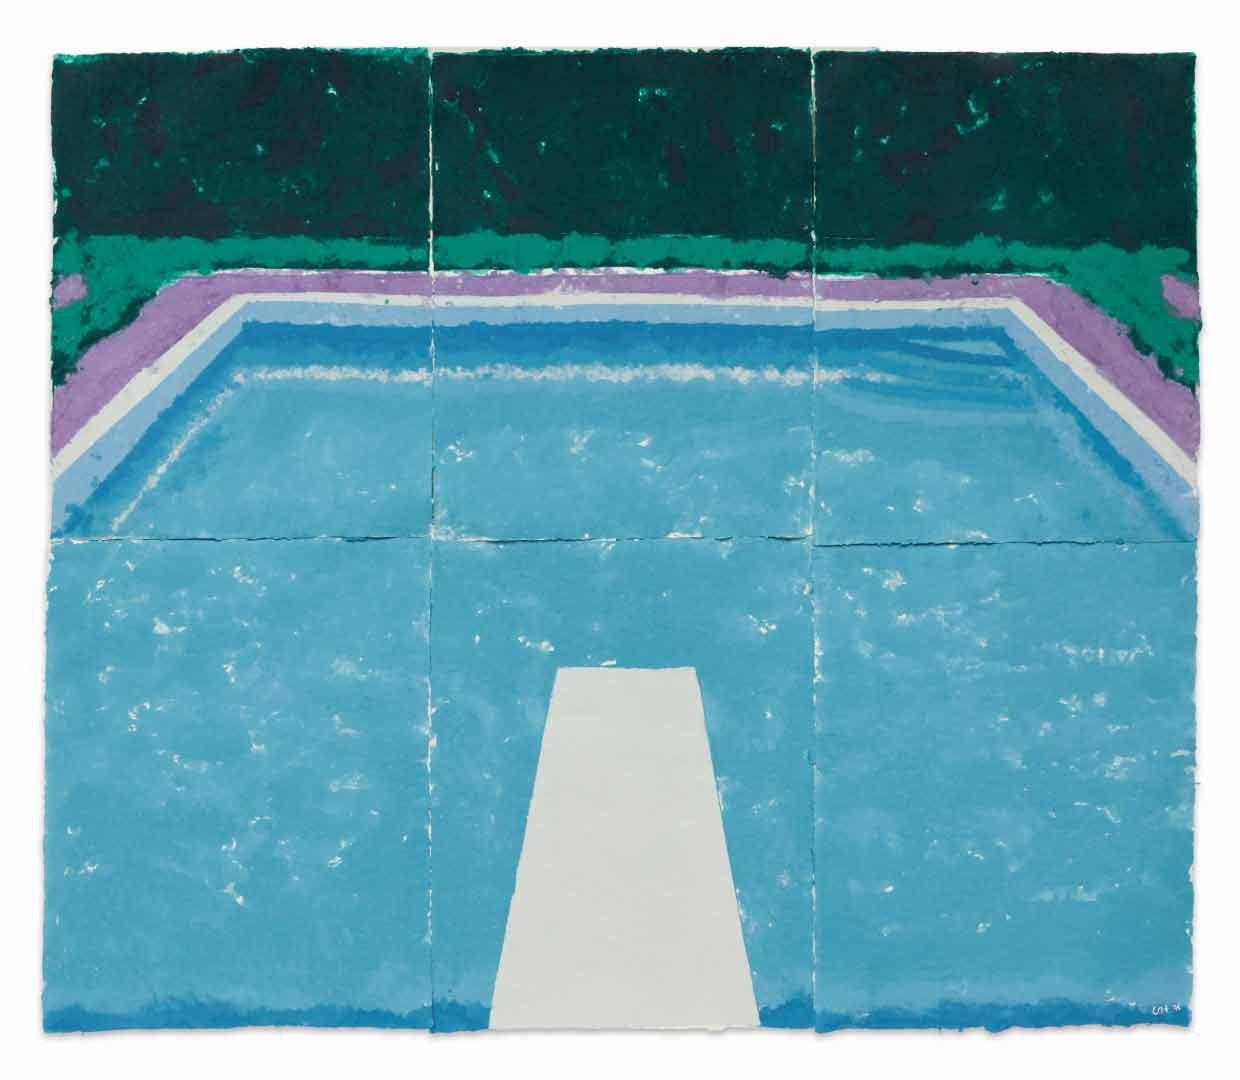 Lot-32-David-Hockney-Pool-on-a-Cloudy-Day-with-Rain-Paper-Pool-22-est.jpg